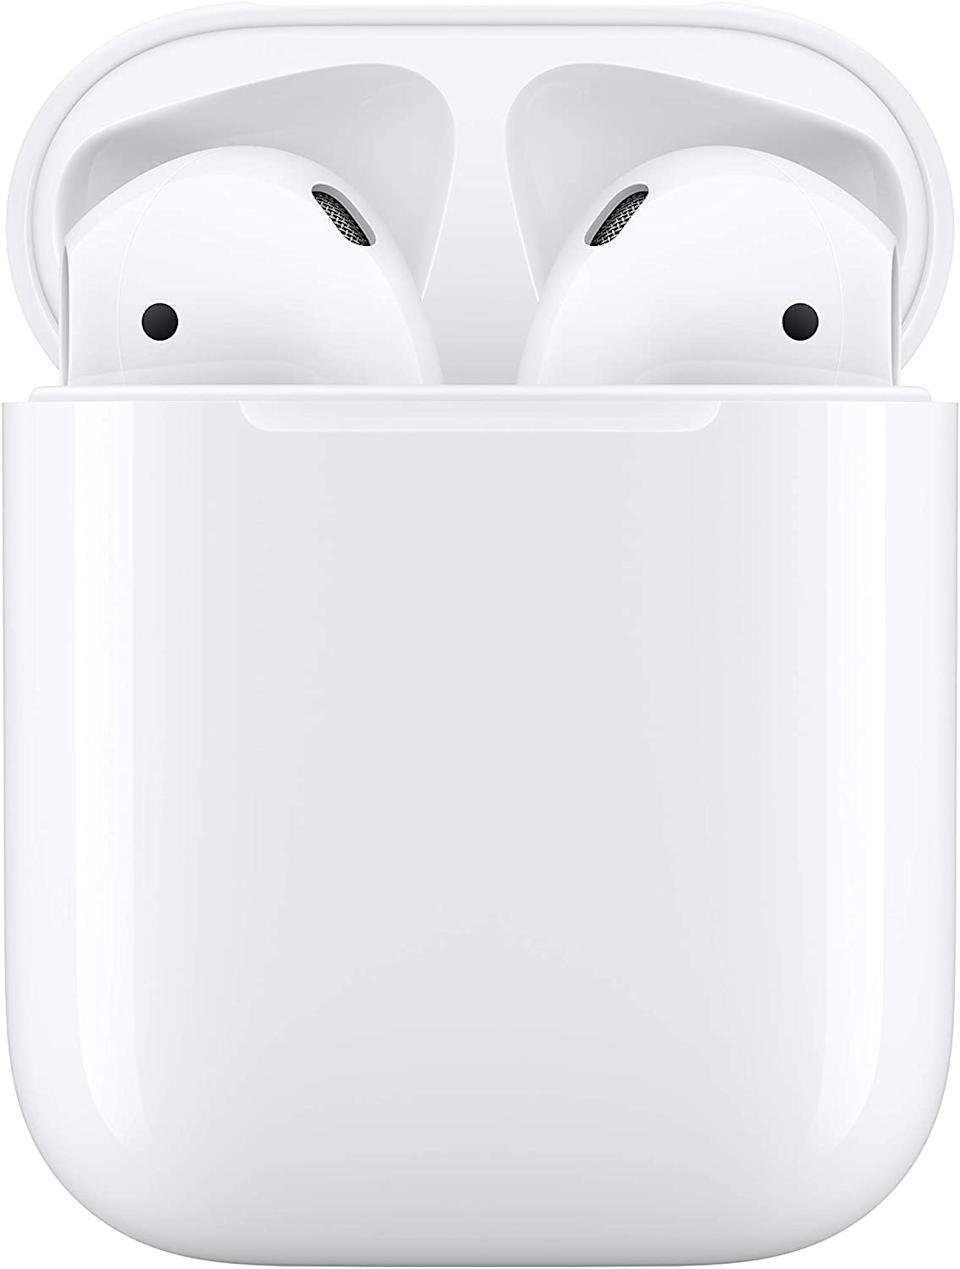 Save 10% on Apple AirPods with Charging Case. Image via Amazon.